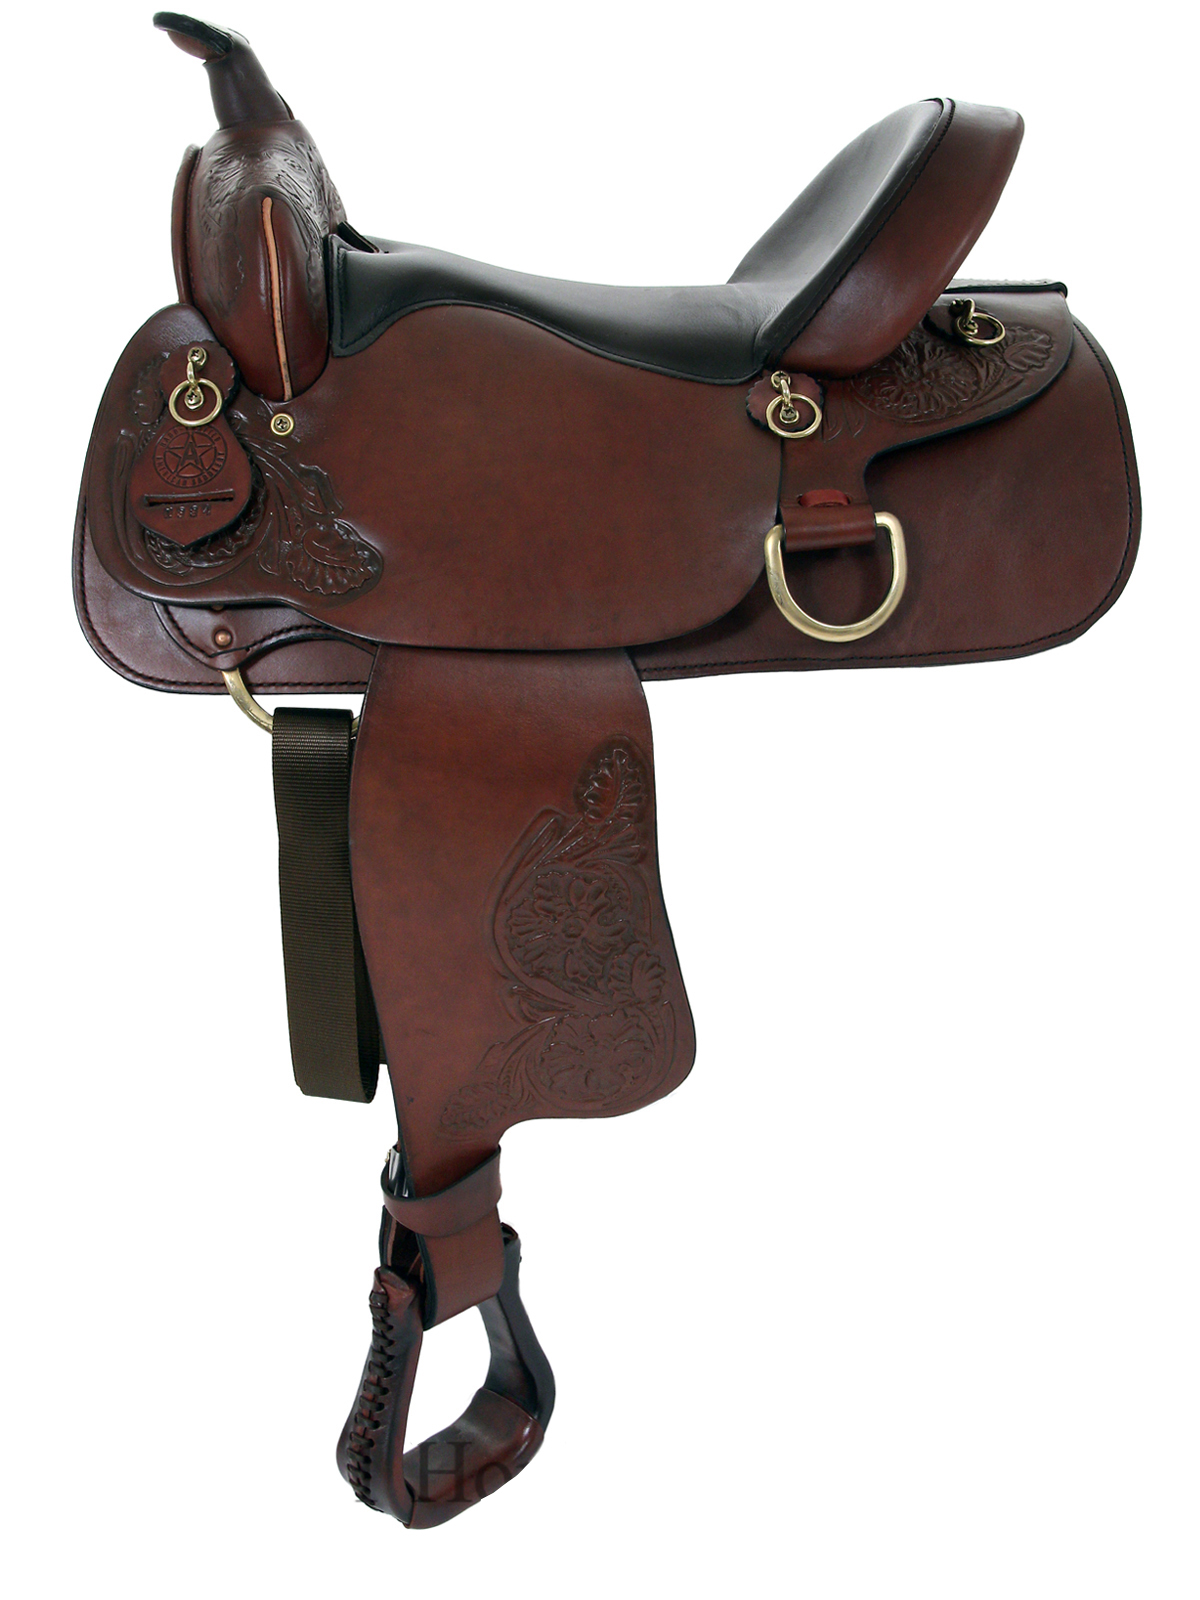 15inch 16inch American Saddlery Deluxe Enduro Trail Saddle 1383 1384